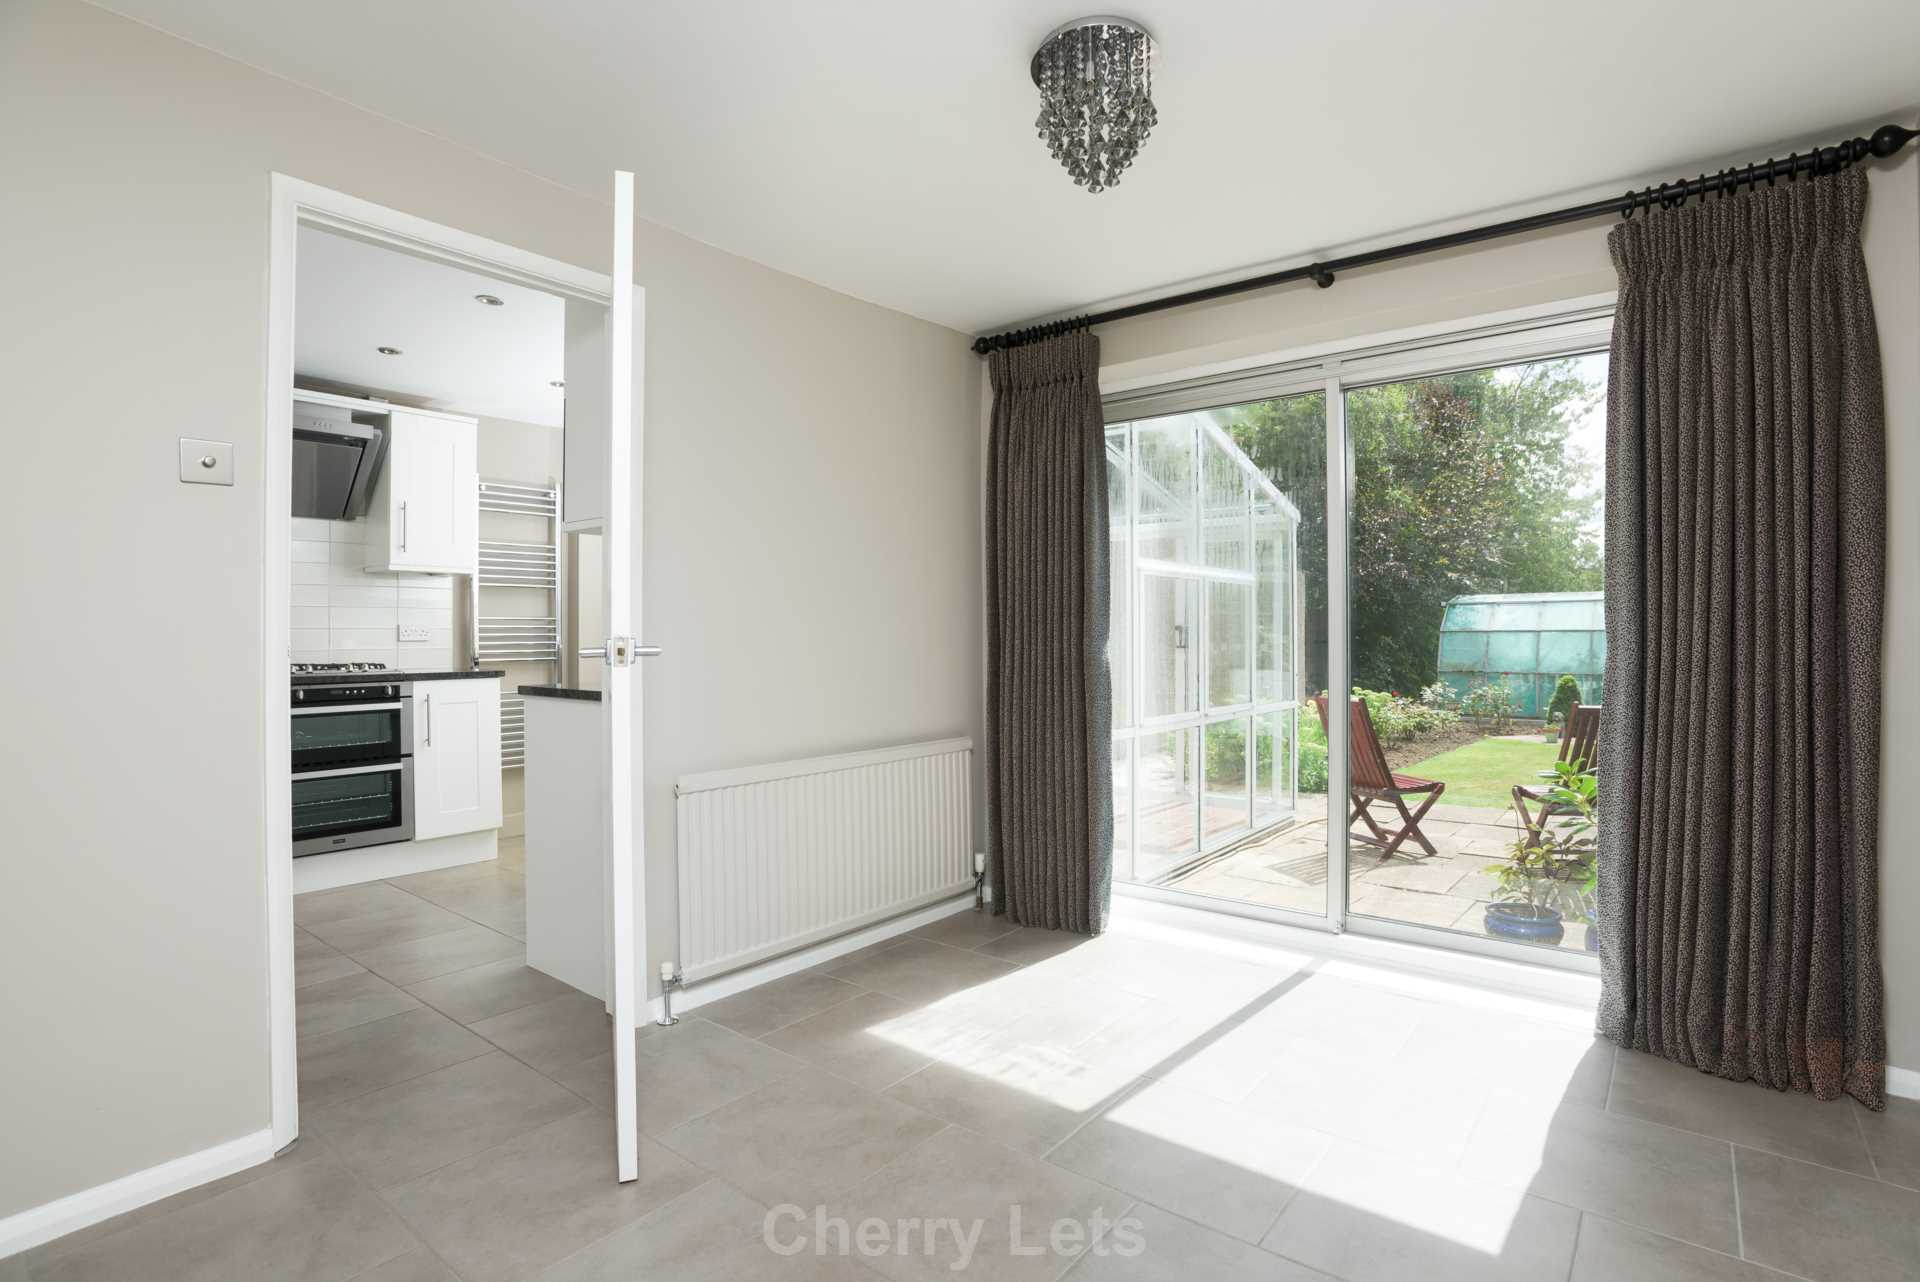 3 bed semi-detached house to rent in Springfield Road, Kidlington, OX5  - Property Image 3